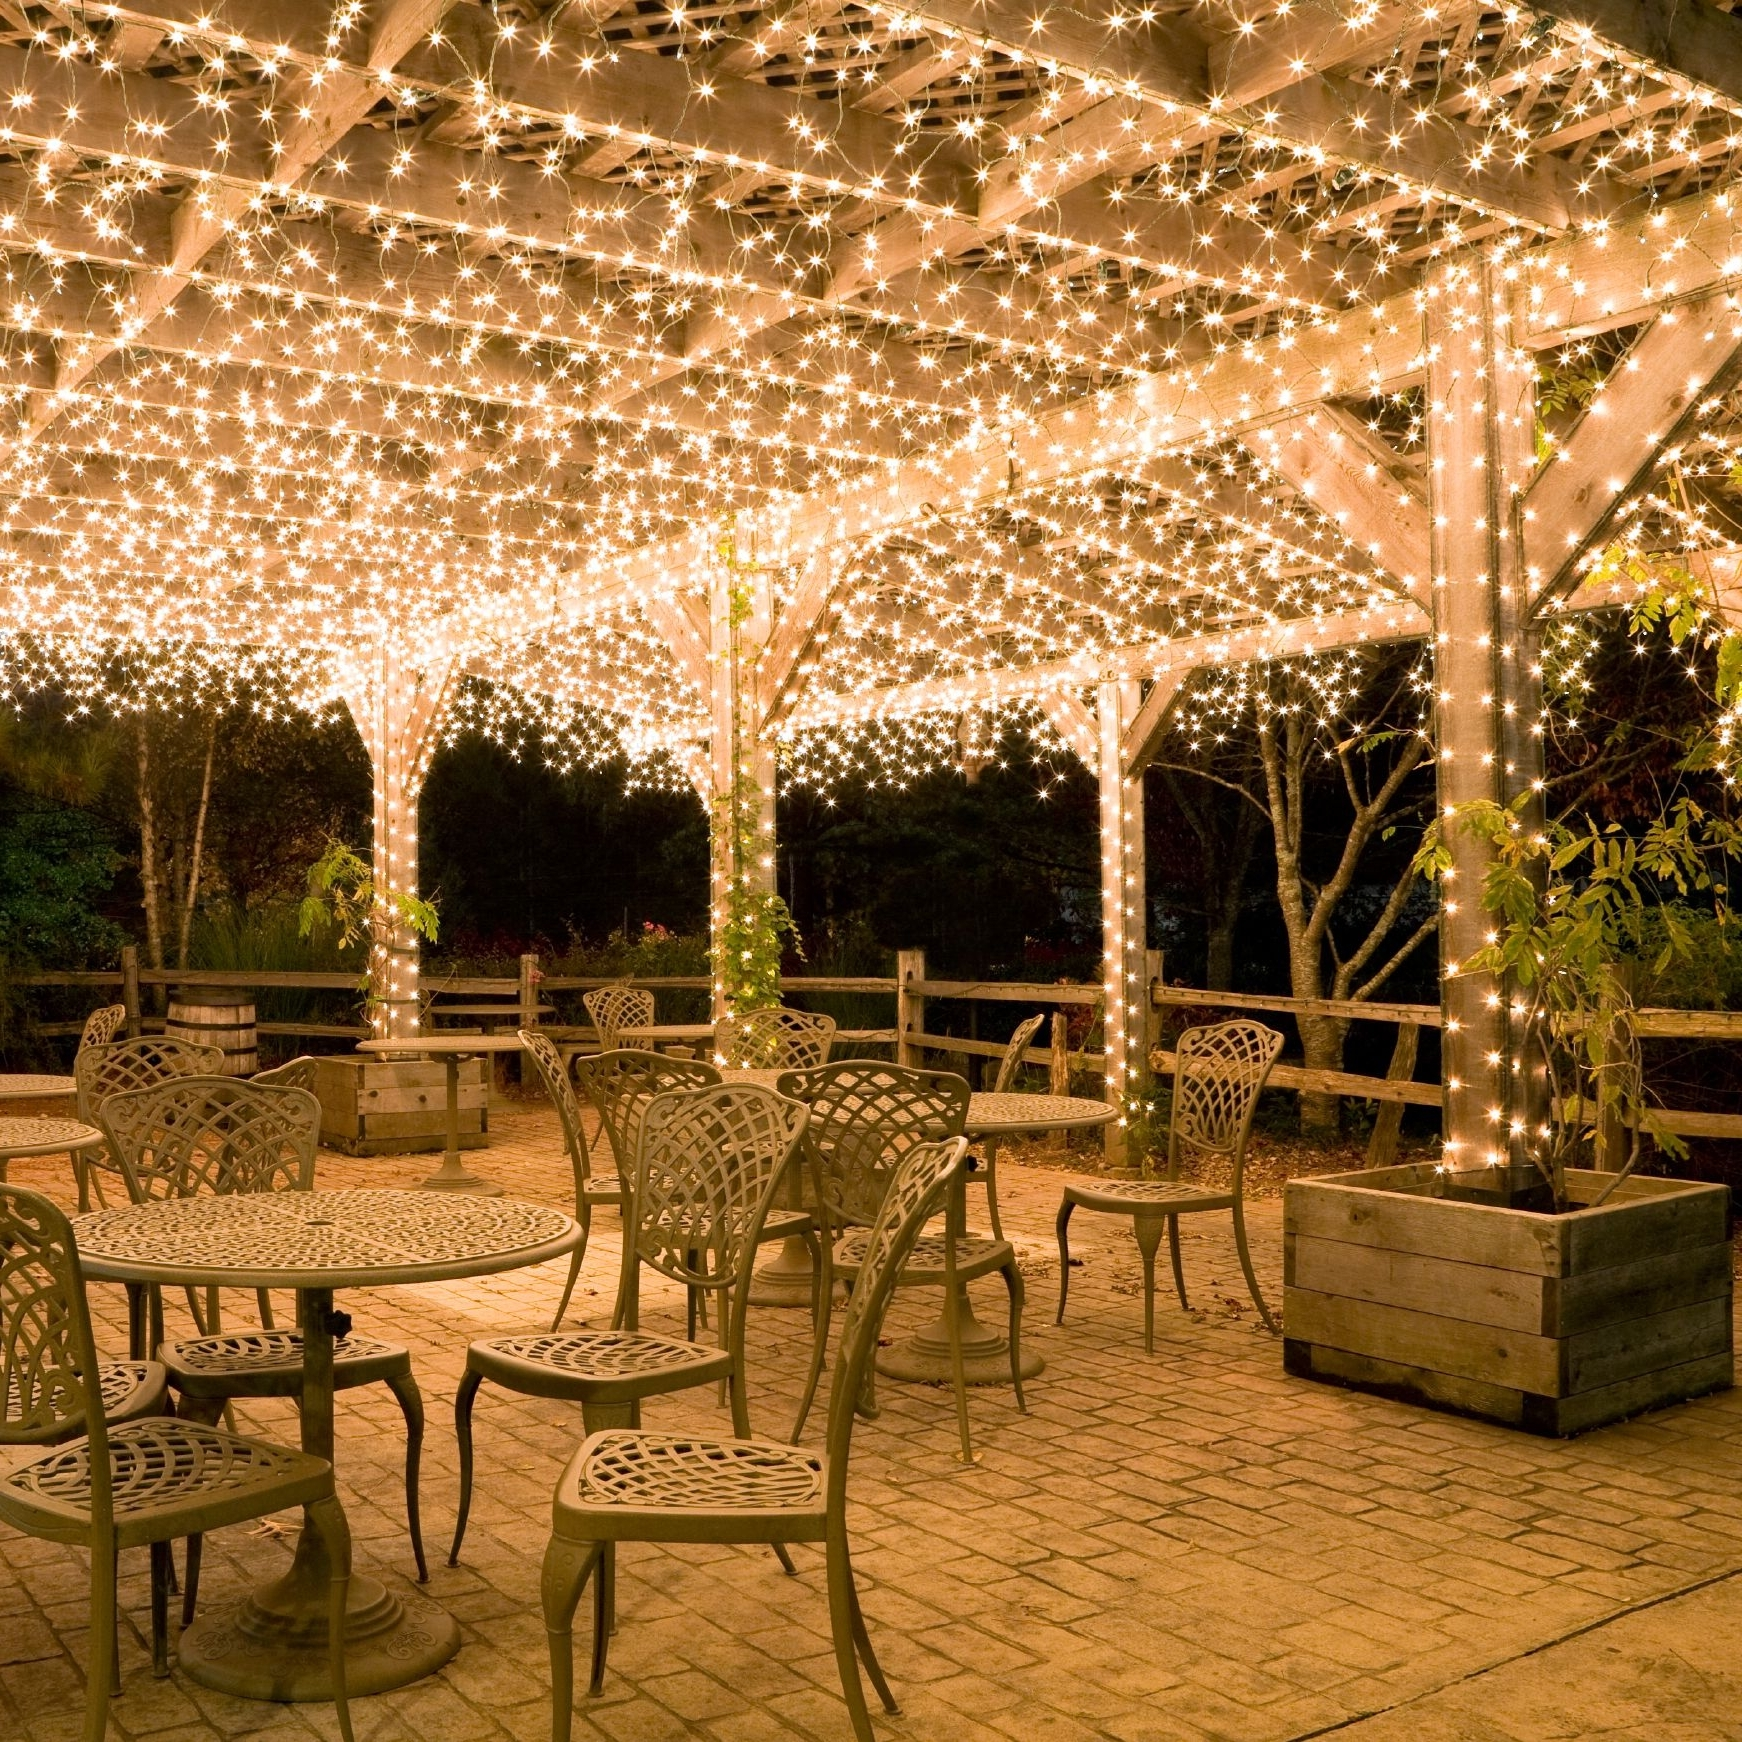 Outdoor Hanging Deck Lights Inside Widely Used Hang White Icicle Lights To Create Magical Outdoor Lighting (View 17 of 20)